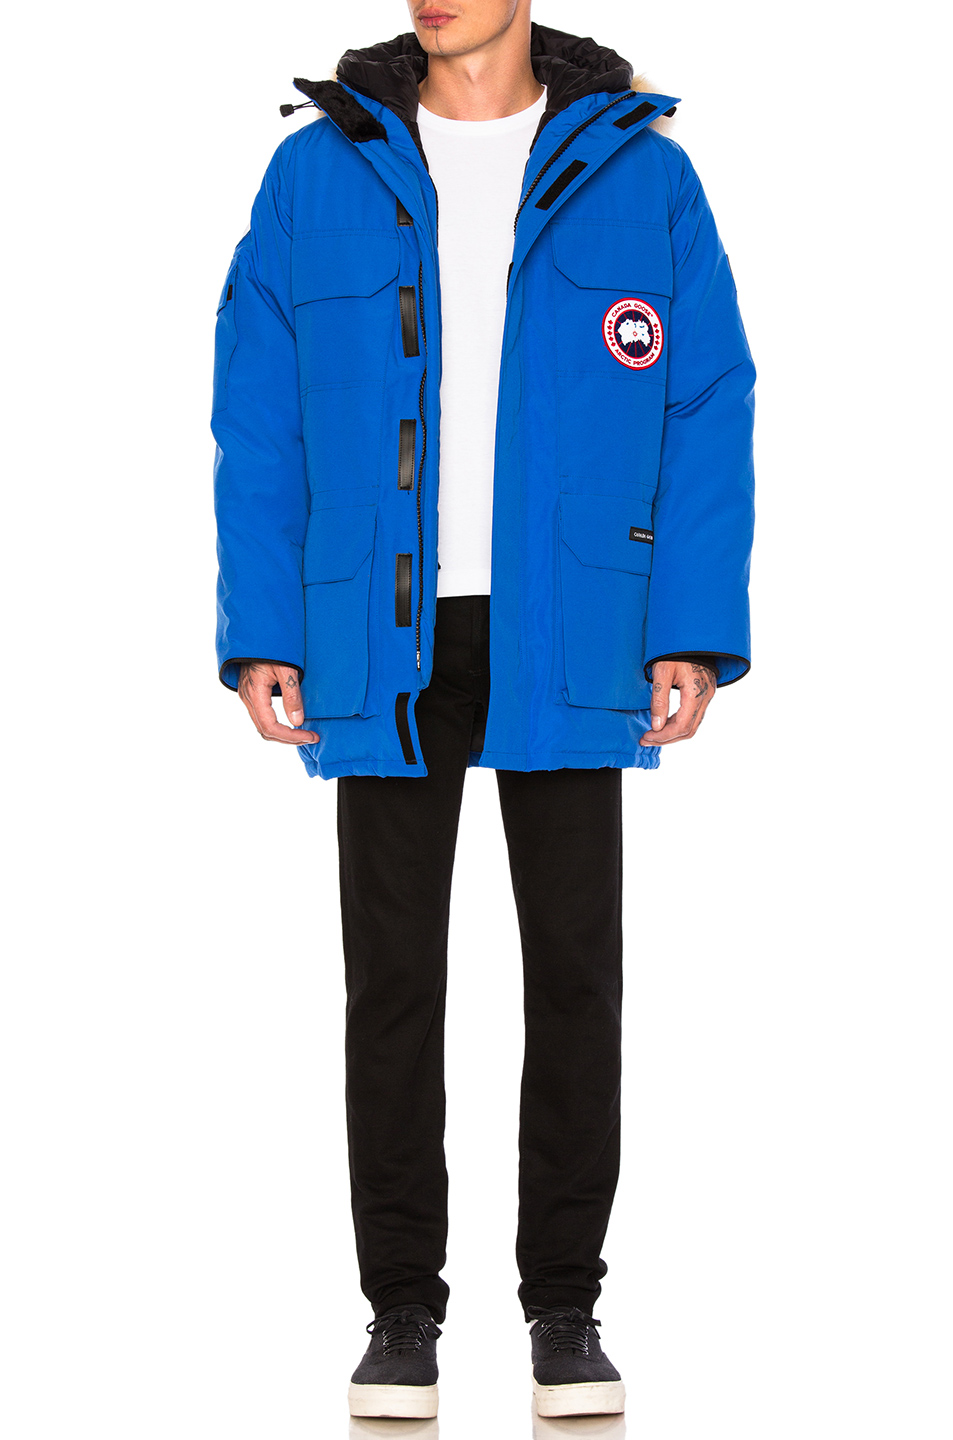 Photo of Canada Goose PBI Expedition Poly-Blend Parka in Blue - shop Canada Goose menswear